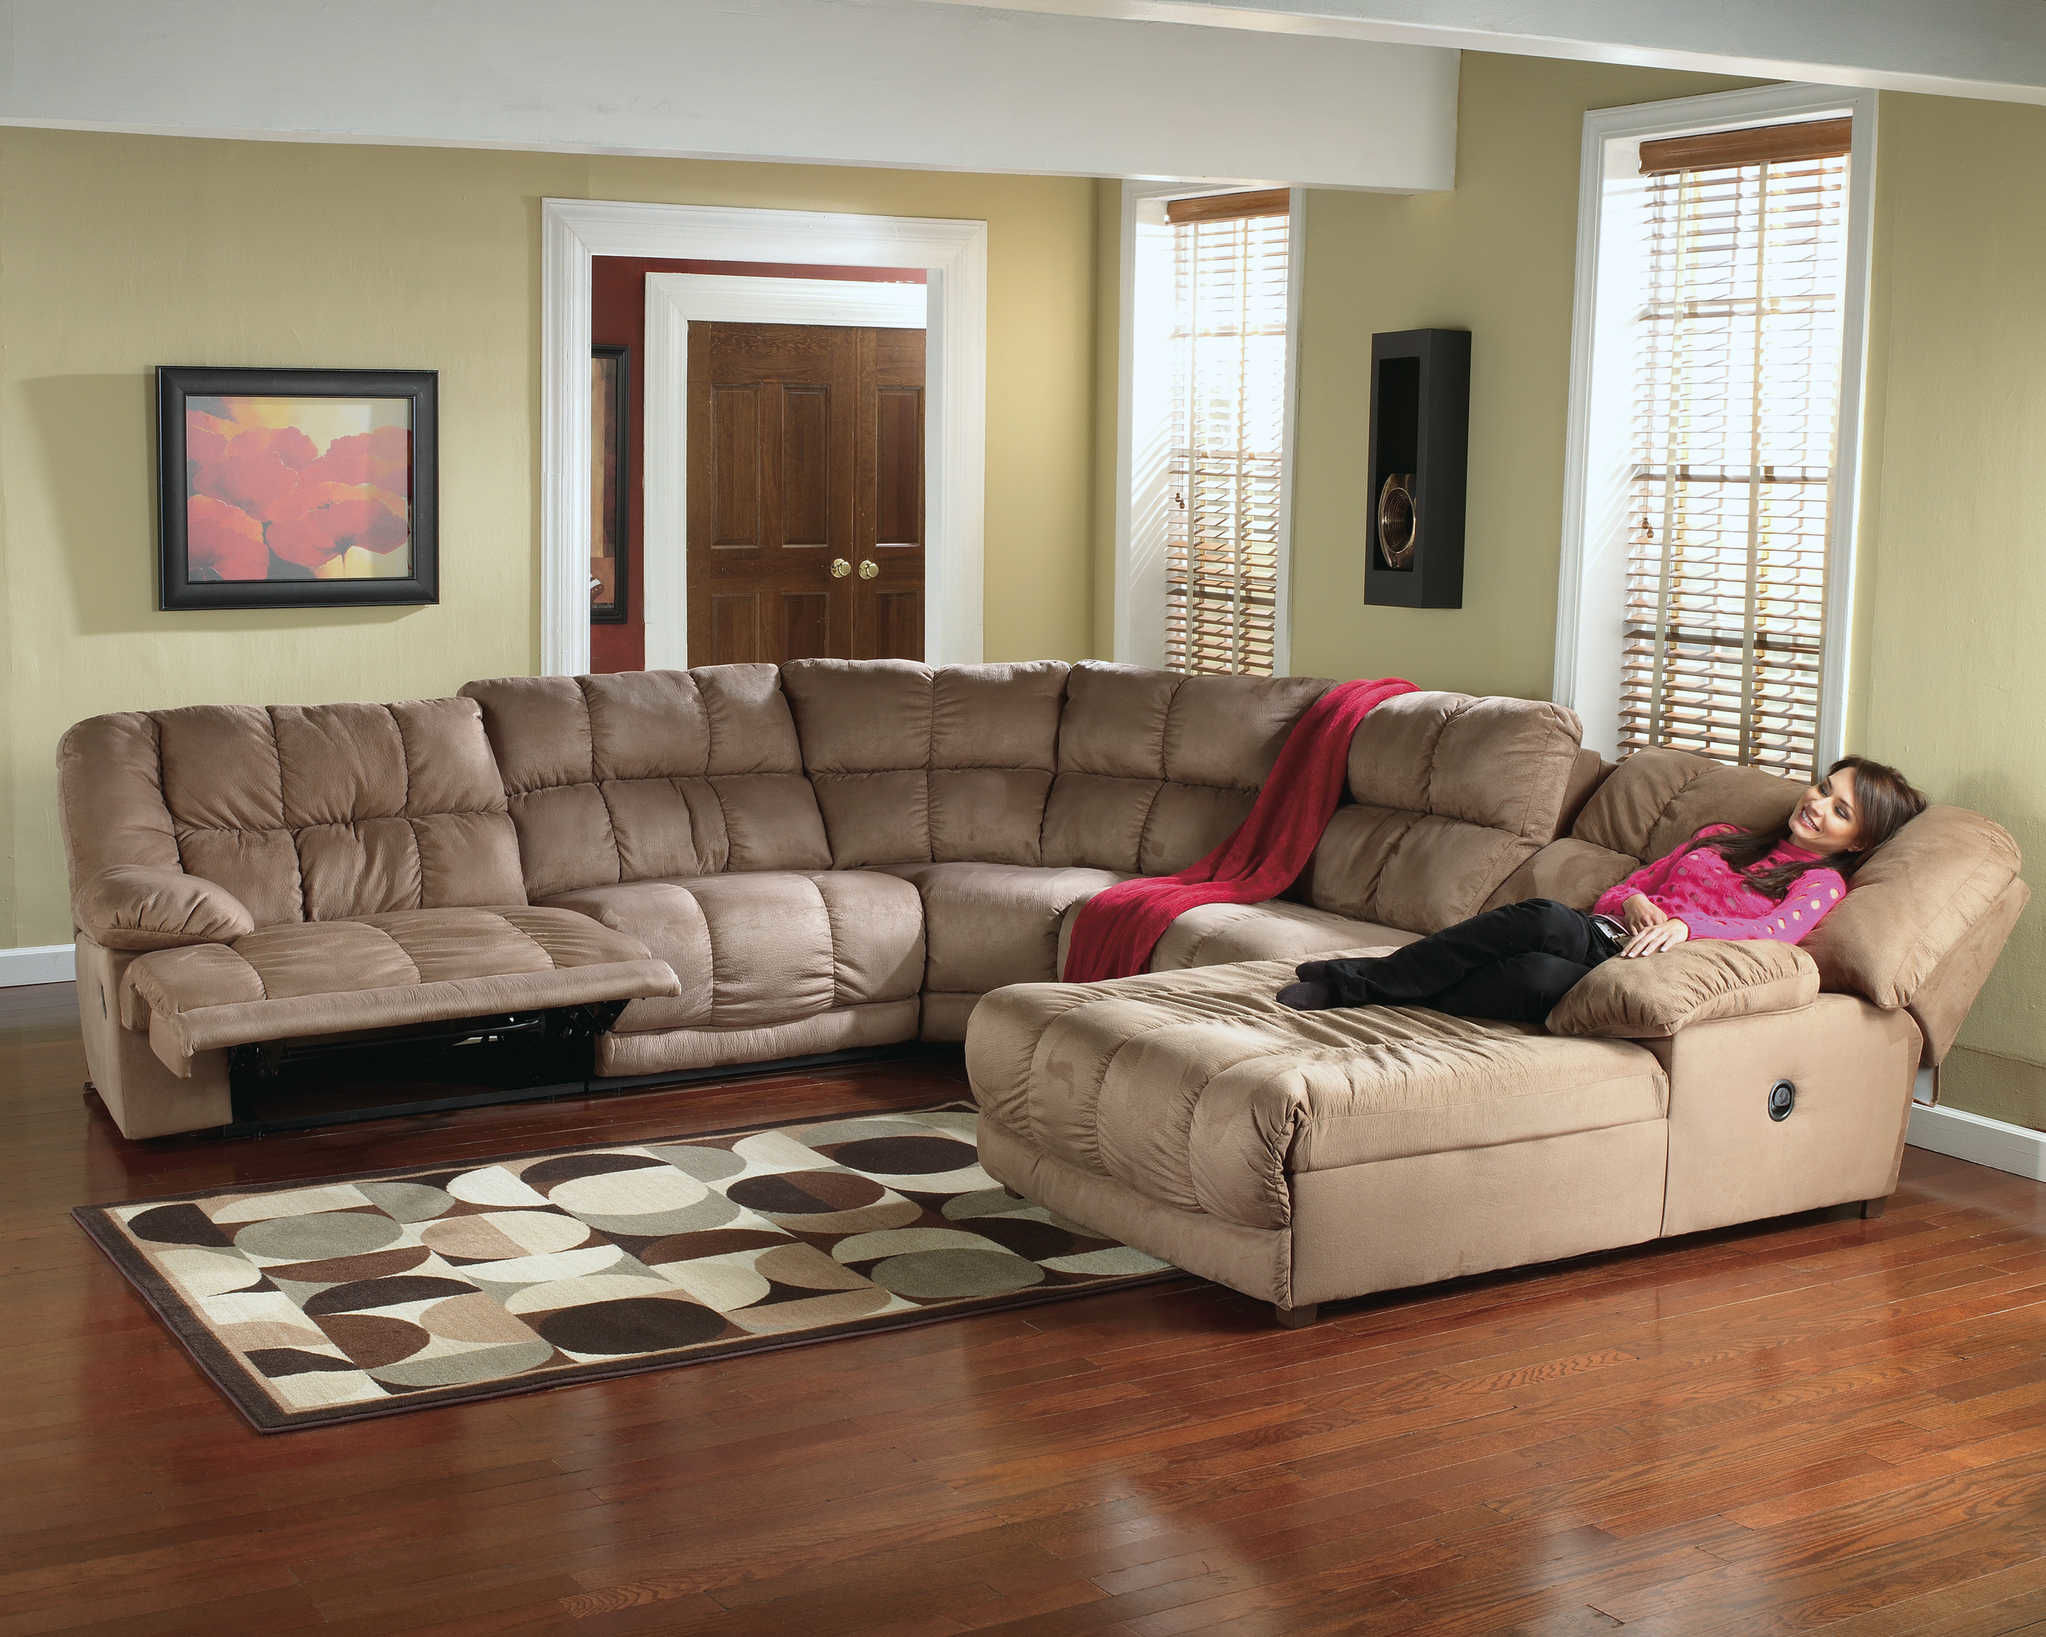 excellent sofas at target image-New sofas at Target Décor